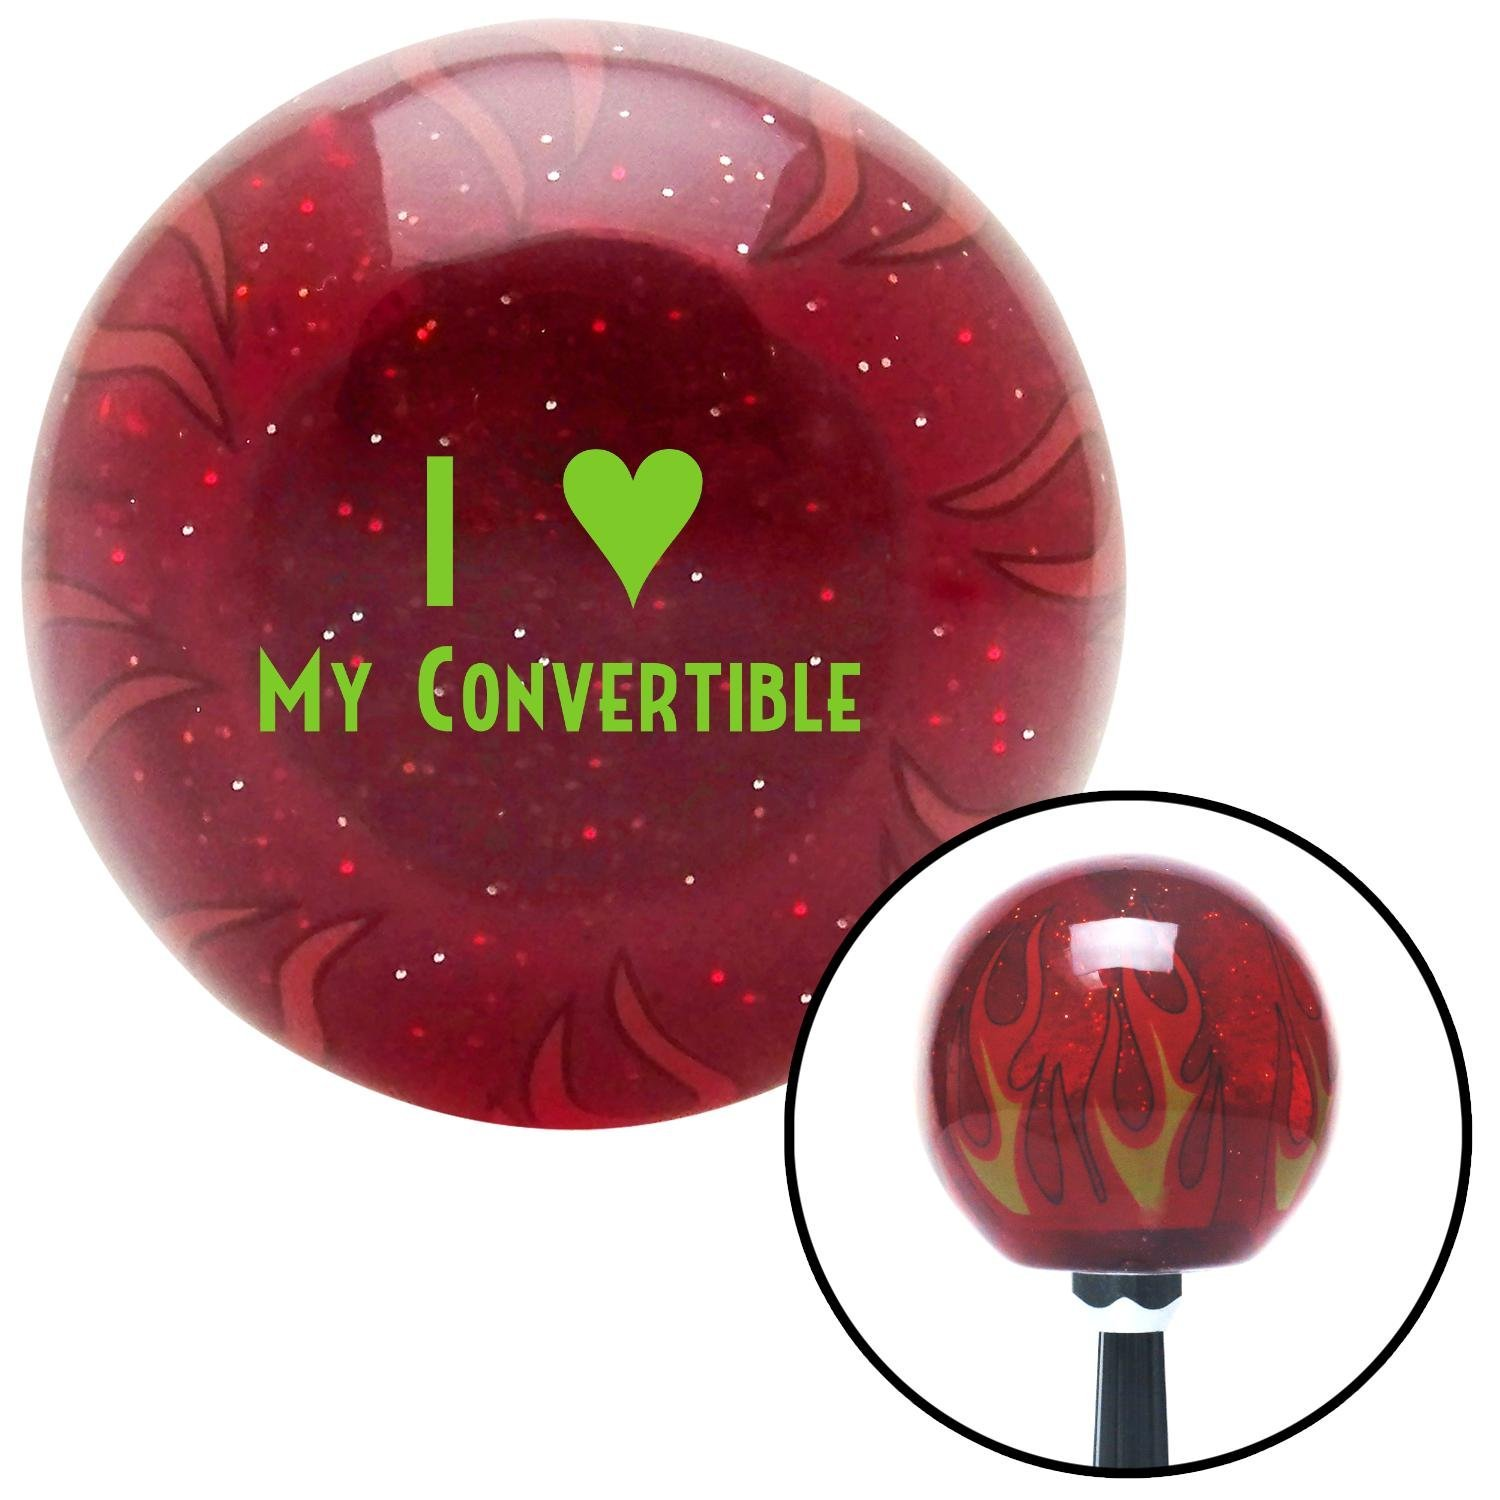 American Shifter 237291 Red Flame Metal Flake Shift Knob with M16 x 1.5 Insert Green I 3 My Convertible